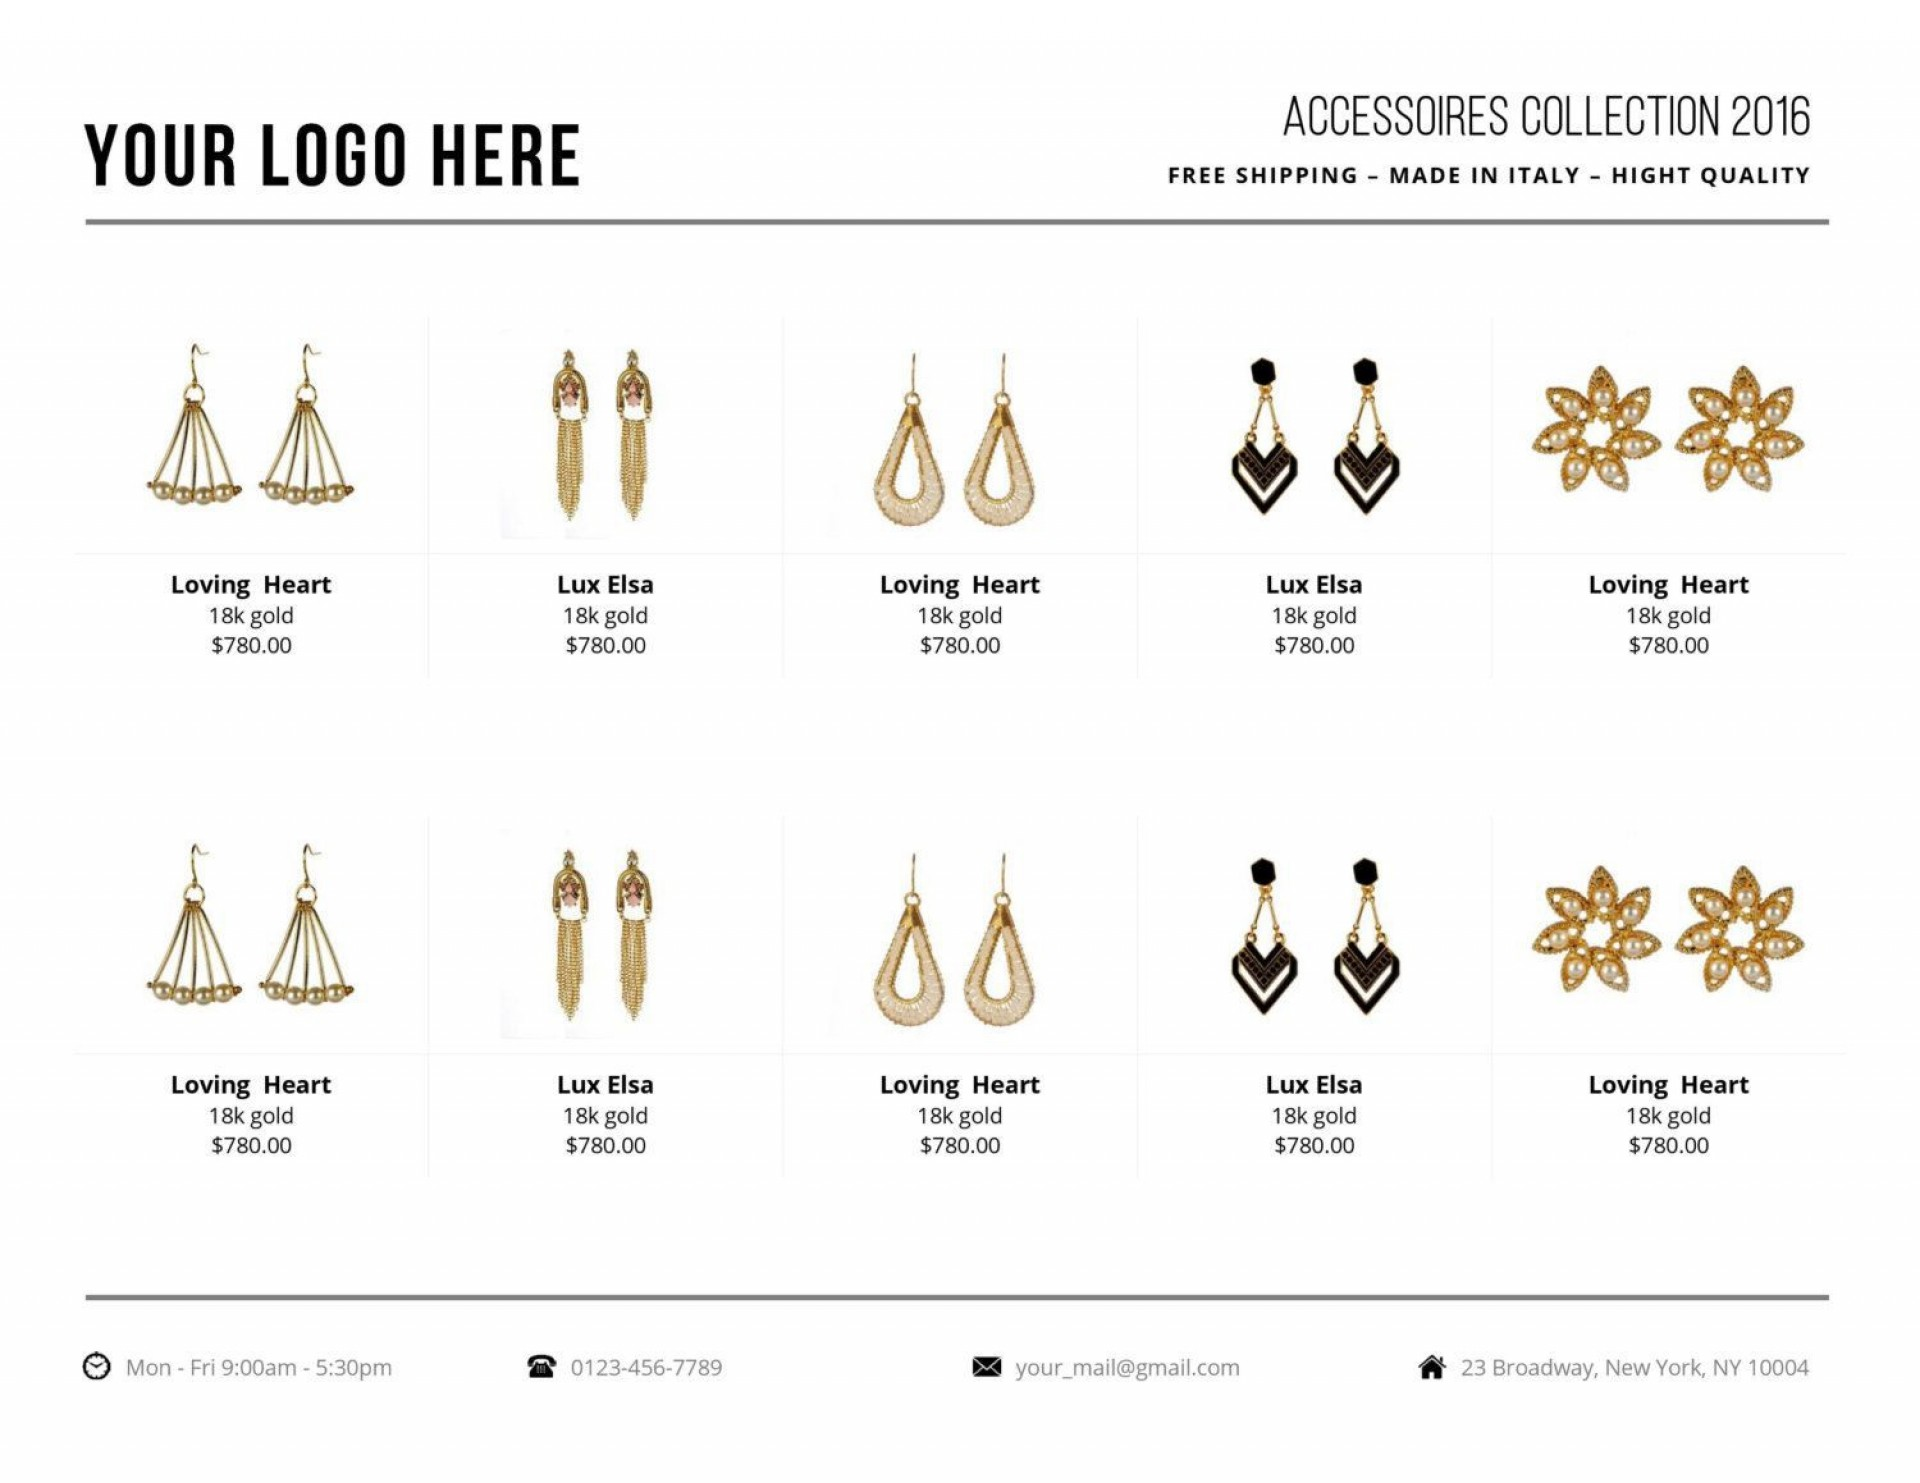 001 Beautiful Wholesale Line Sheet Template Image  Fashion Free Excel1920